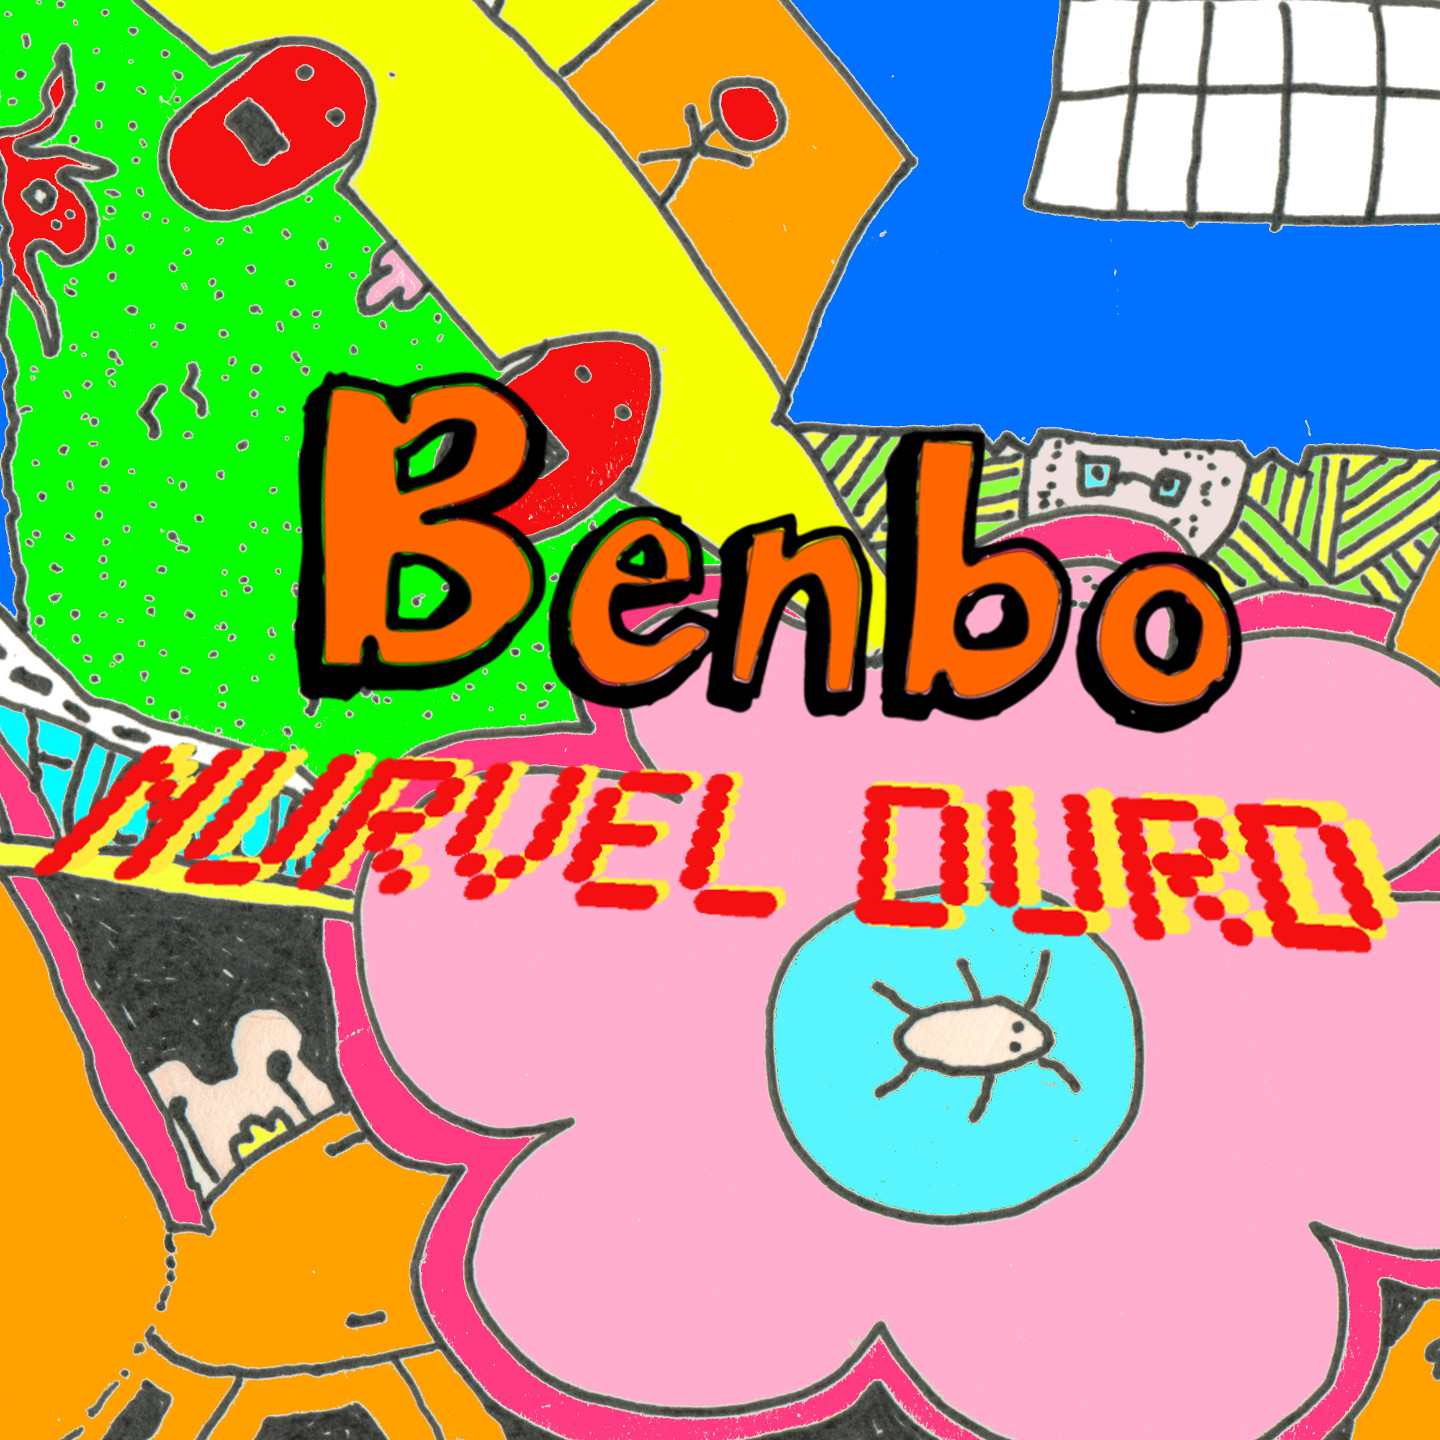 BENBO_Nurvel_Durd_PinkLizardMusic_medium.jpg